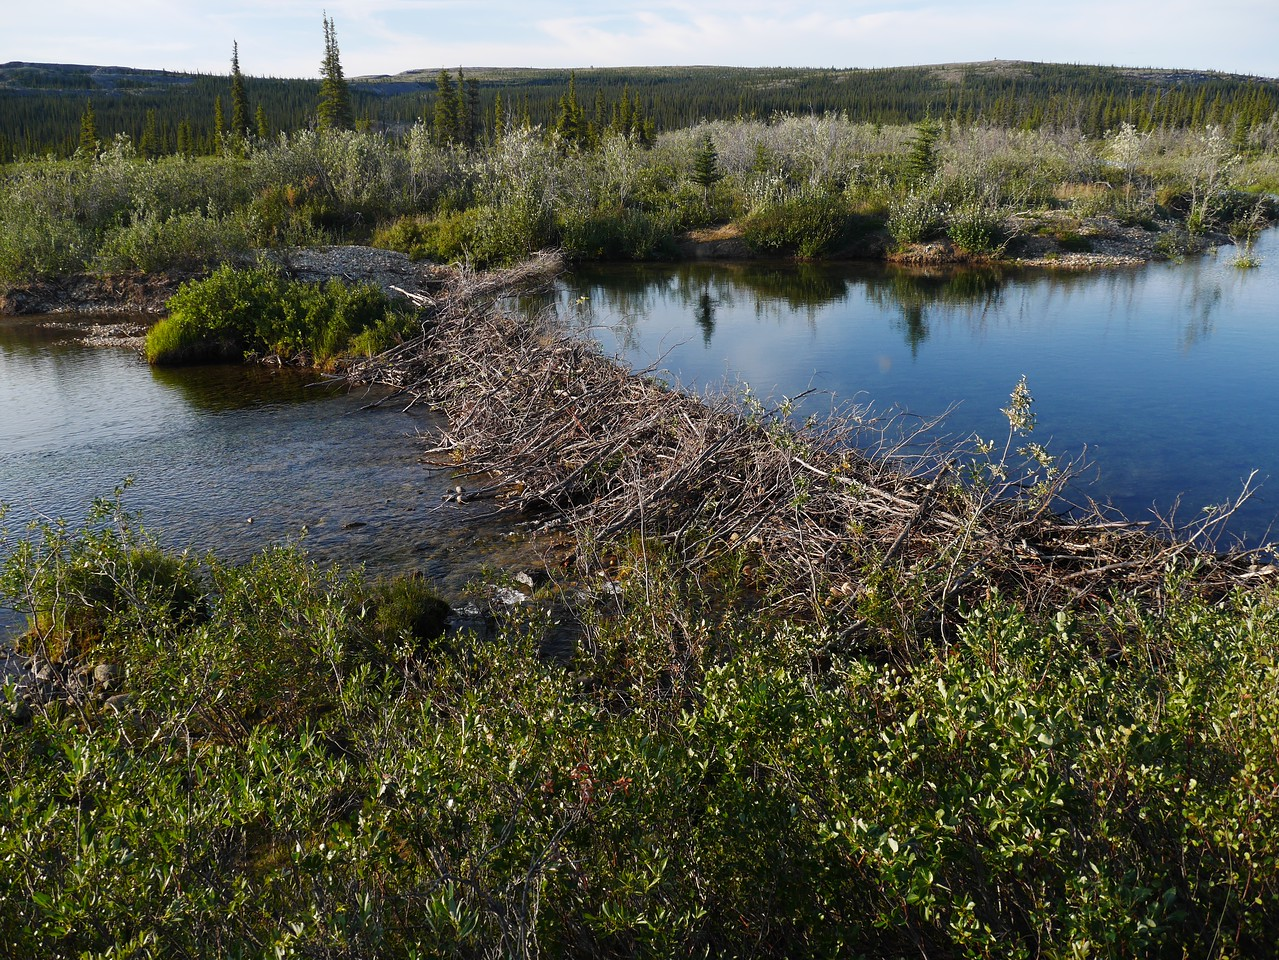 Day 5 - We camped close to a huge beaver dam but never saw the beavers.